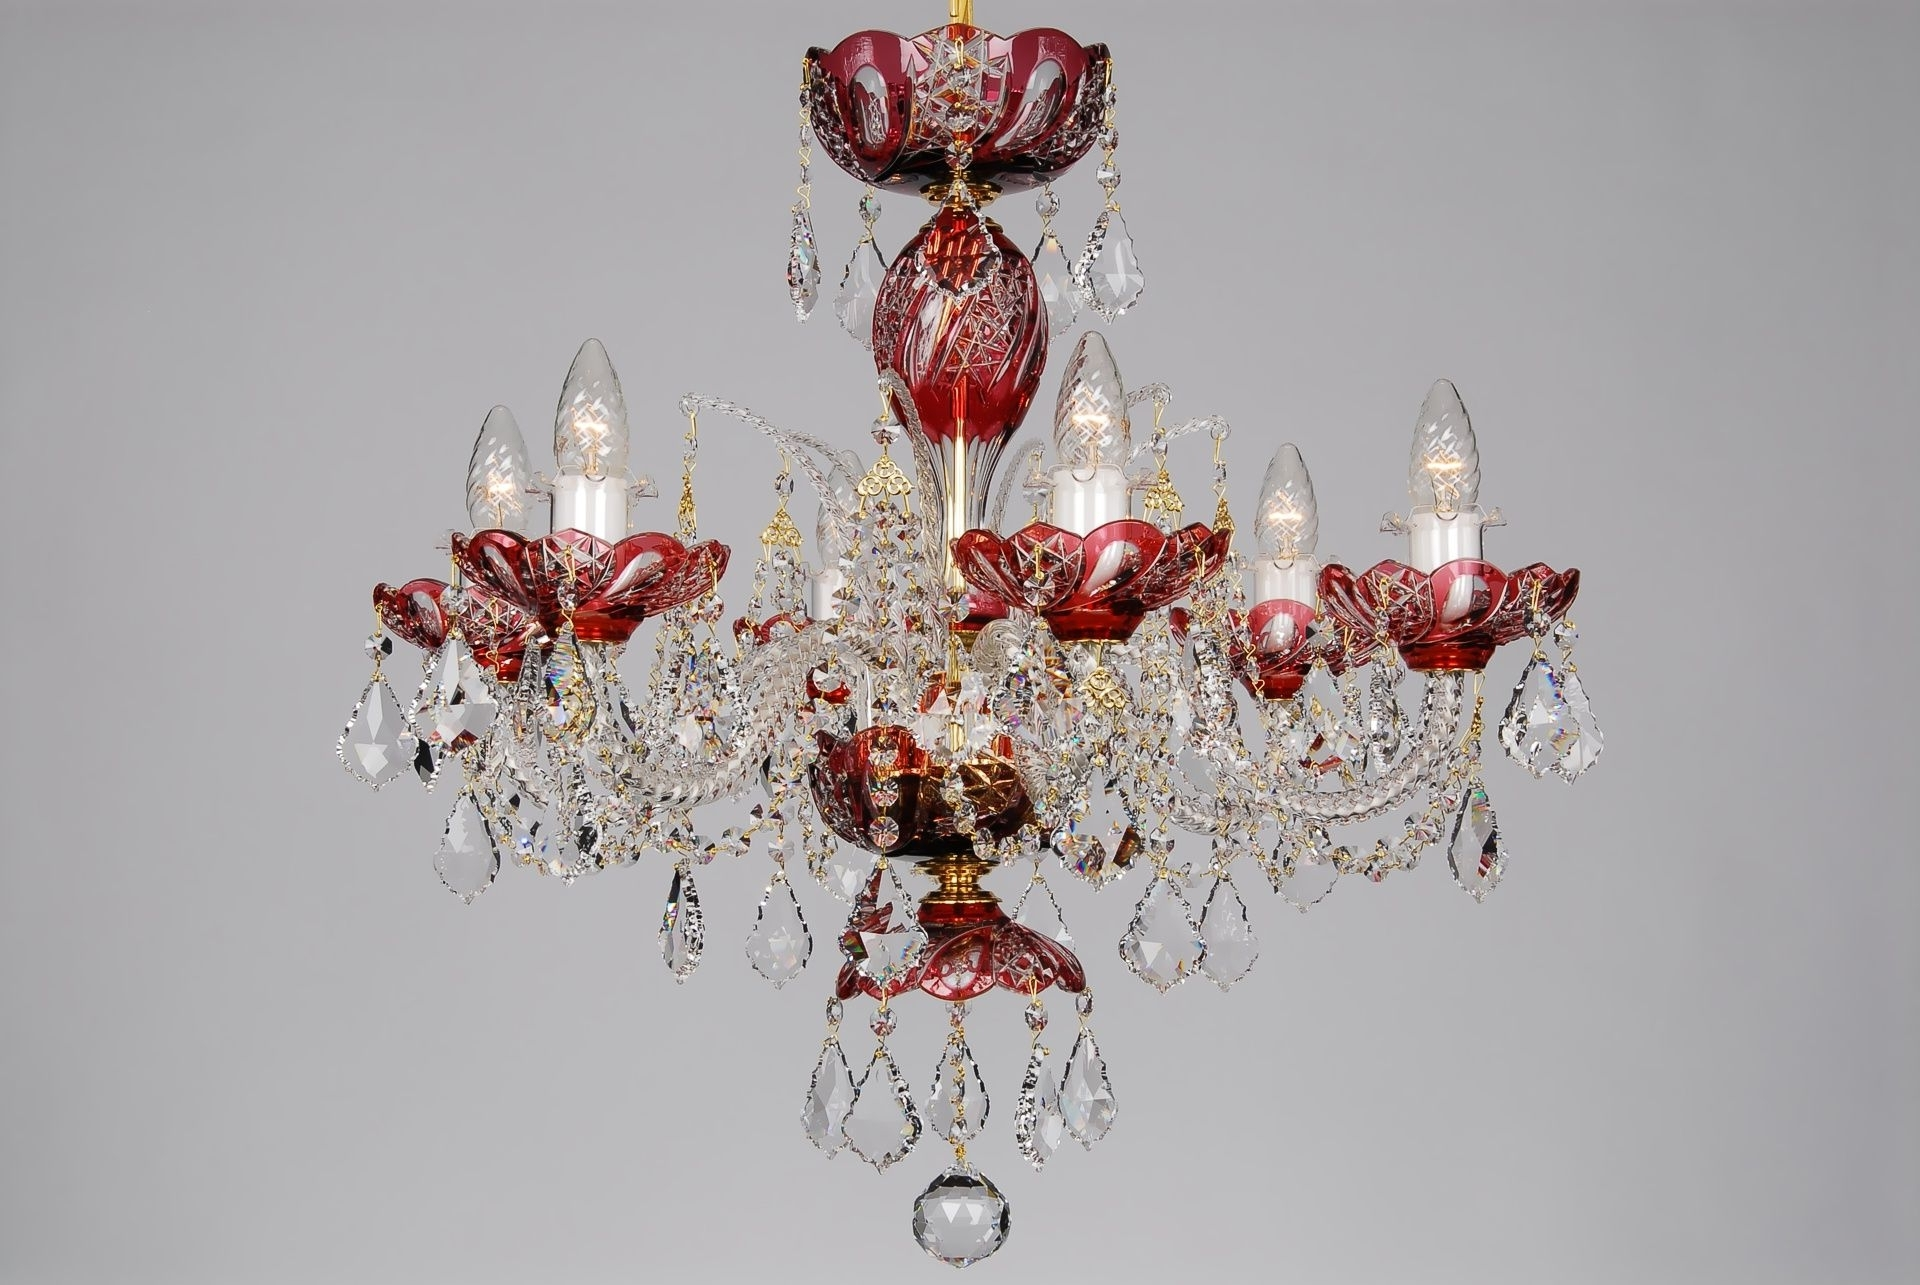 Small Red Chandelier For 2019 A Small Red Crystal Chandelier Decorated With Swarovski Trimmings (View 2 of 20)